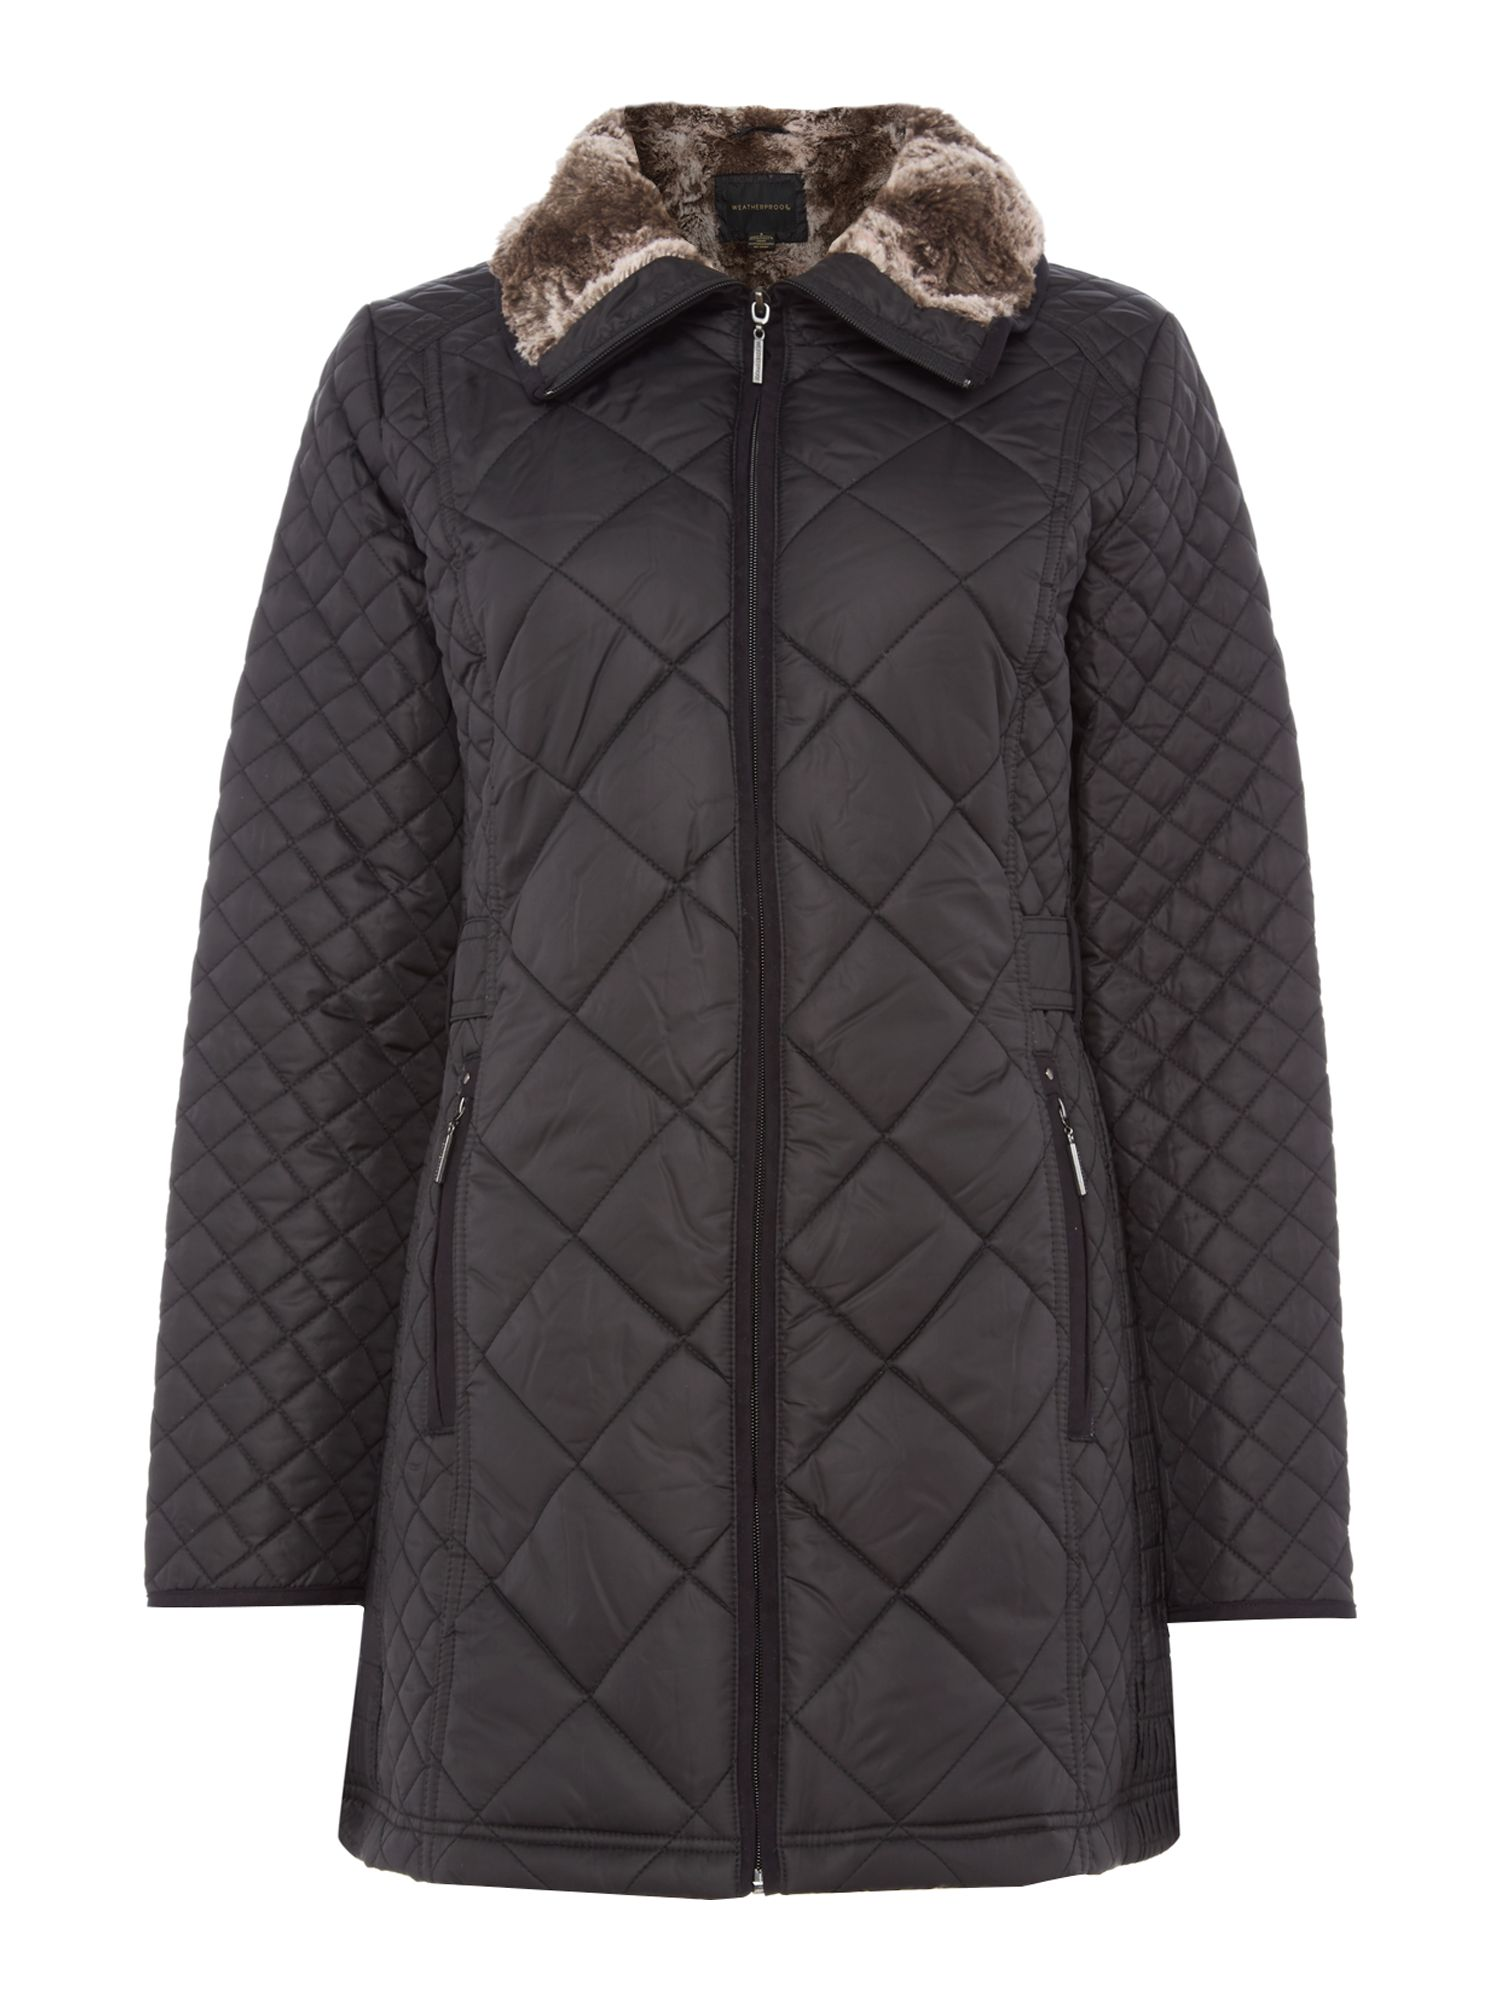 Ladies' Padded Coats :: Shop Women's Padded Coats :: House of Fraser